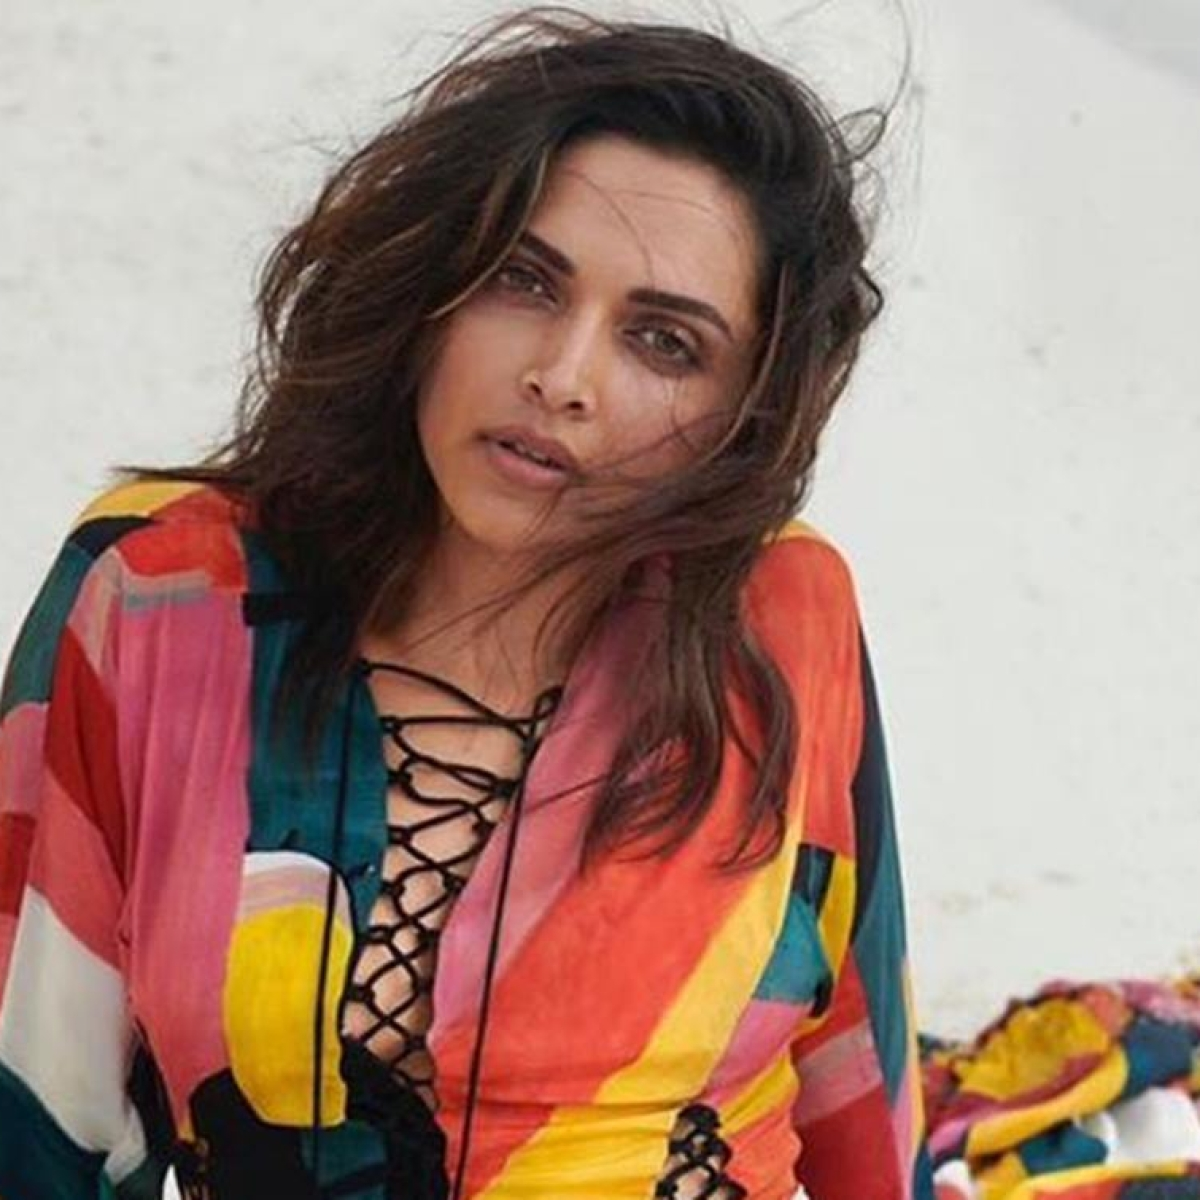 Deepika Padukone hosts 'Ask Me Anything' session, shares her favourite food, first thing she does after waking up and more